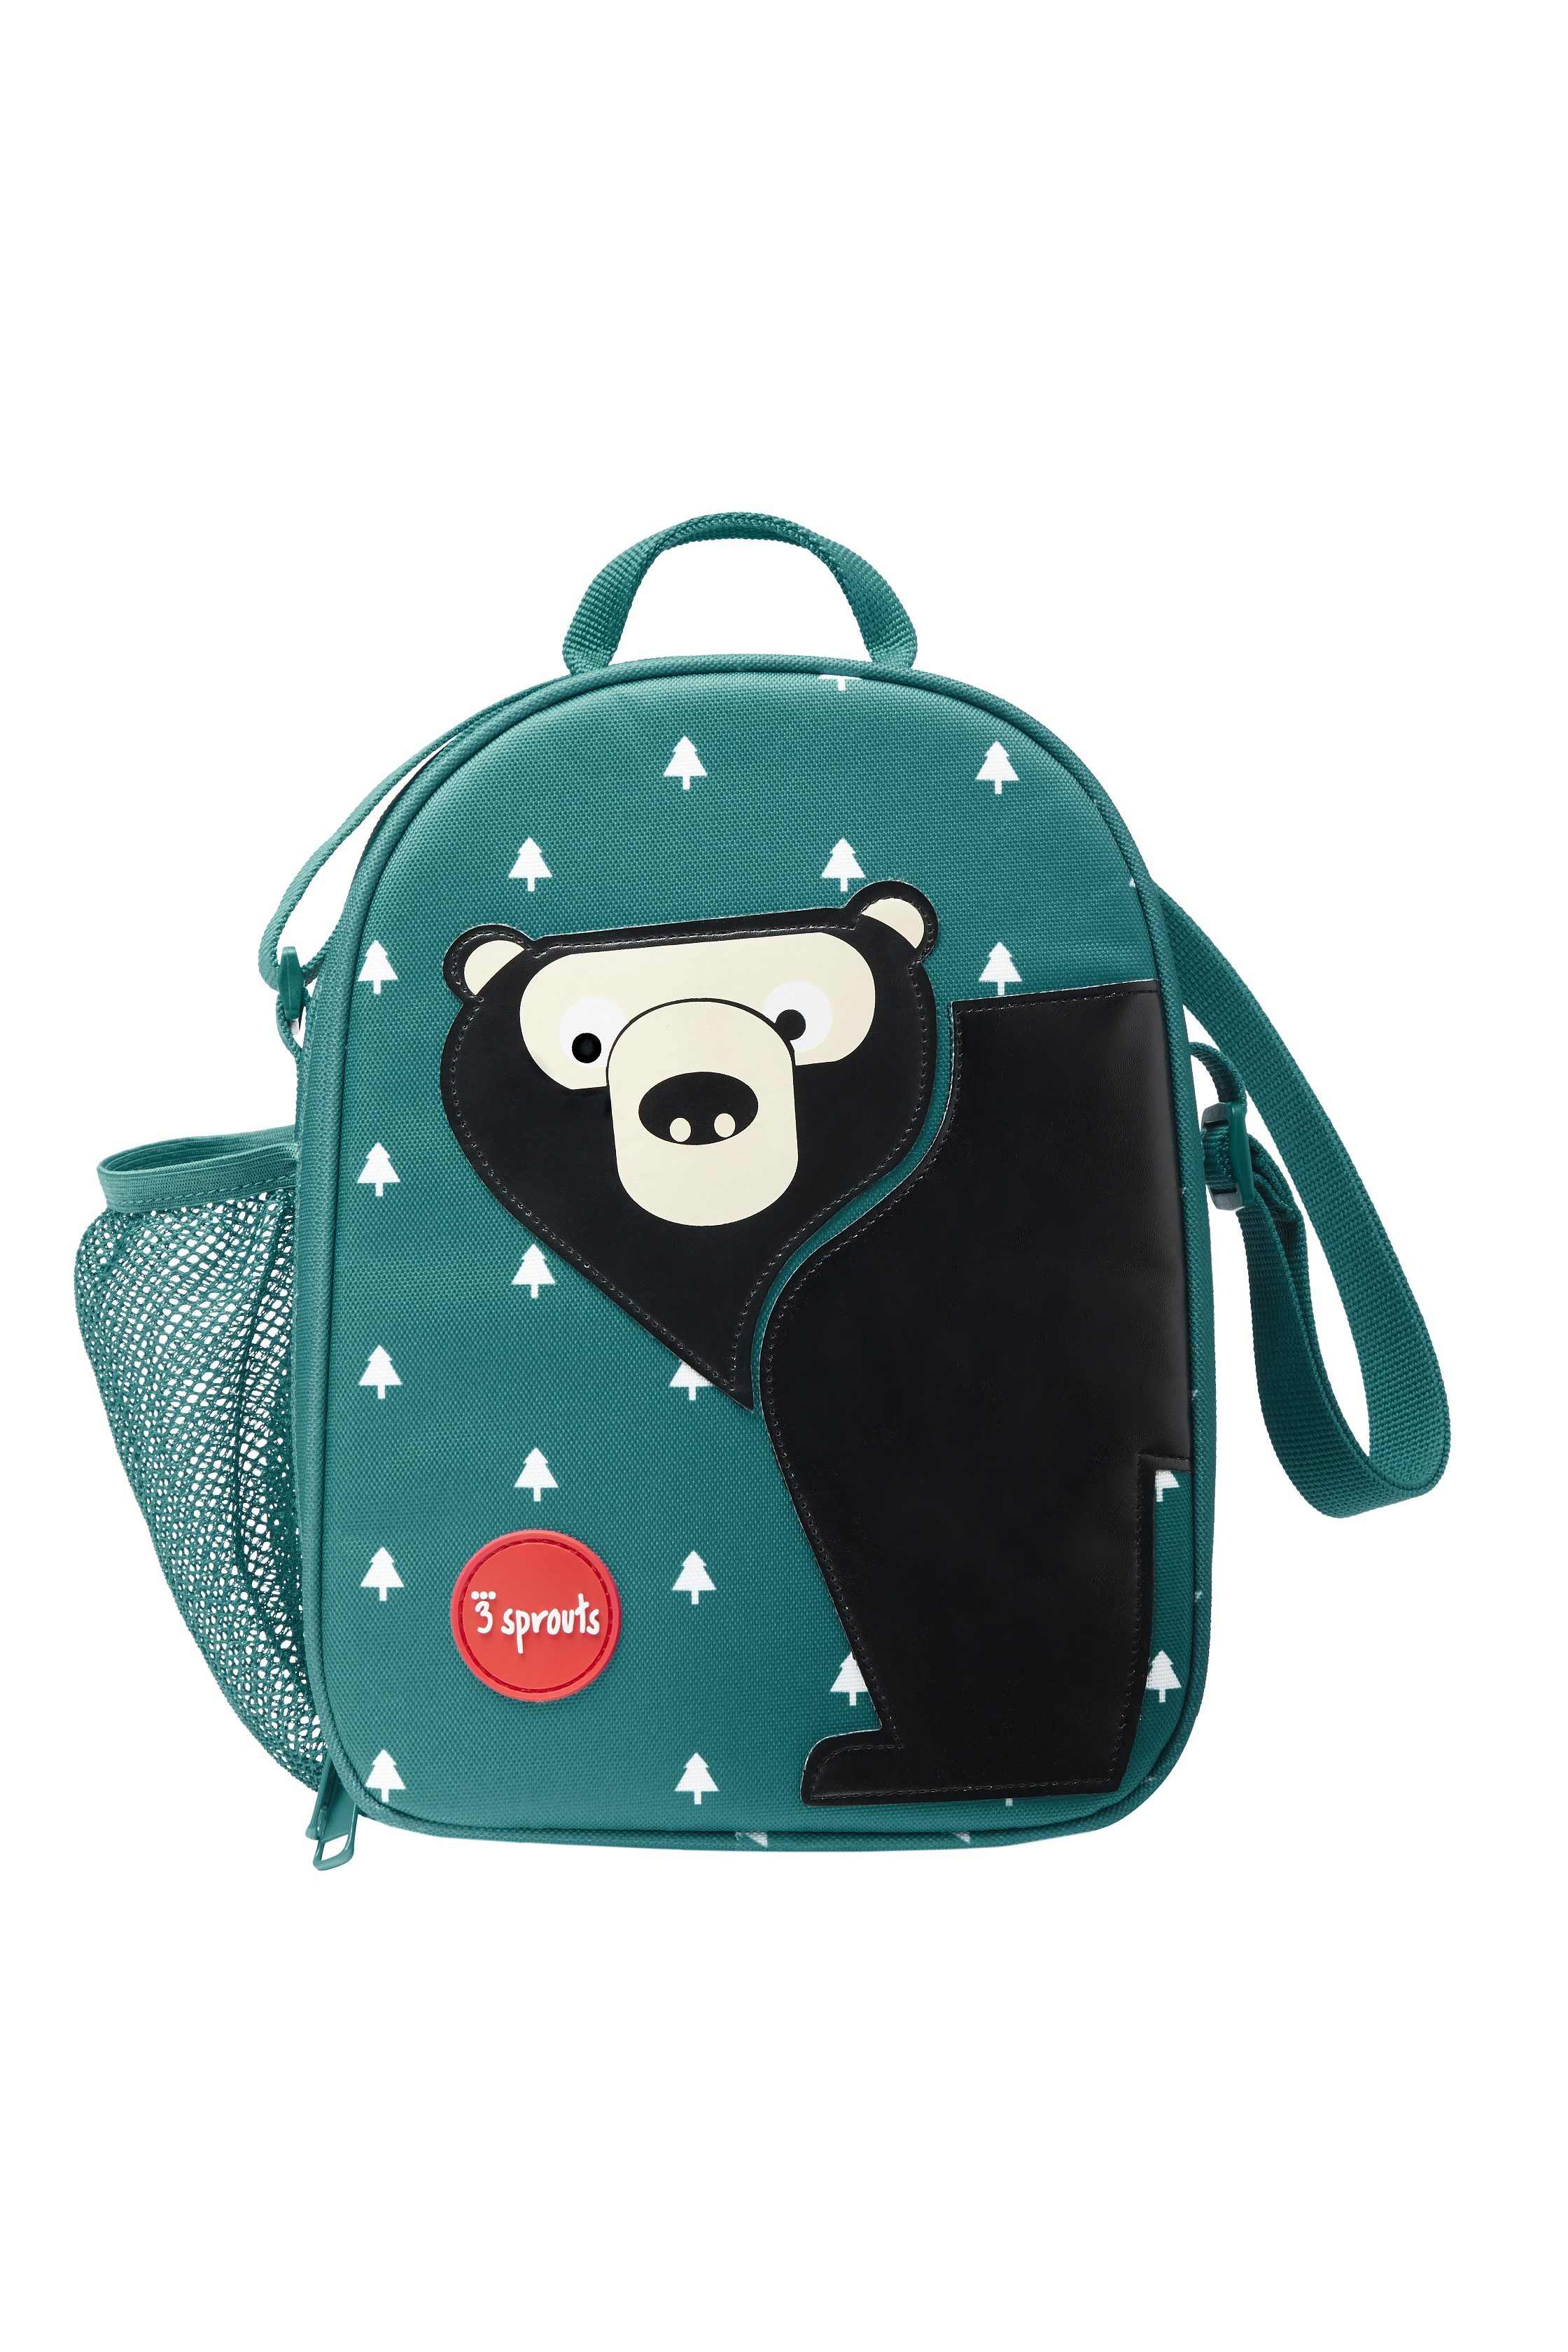 3 Sprouts - Lunch Bag - Teal Bear